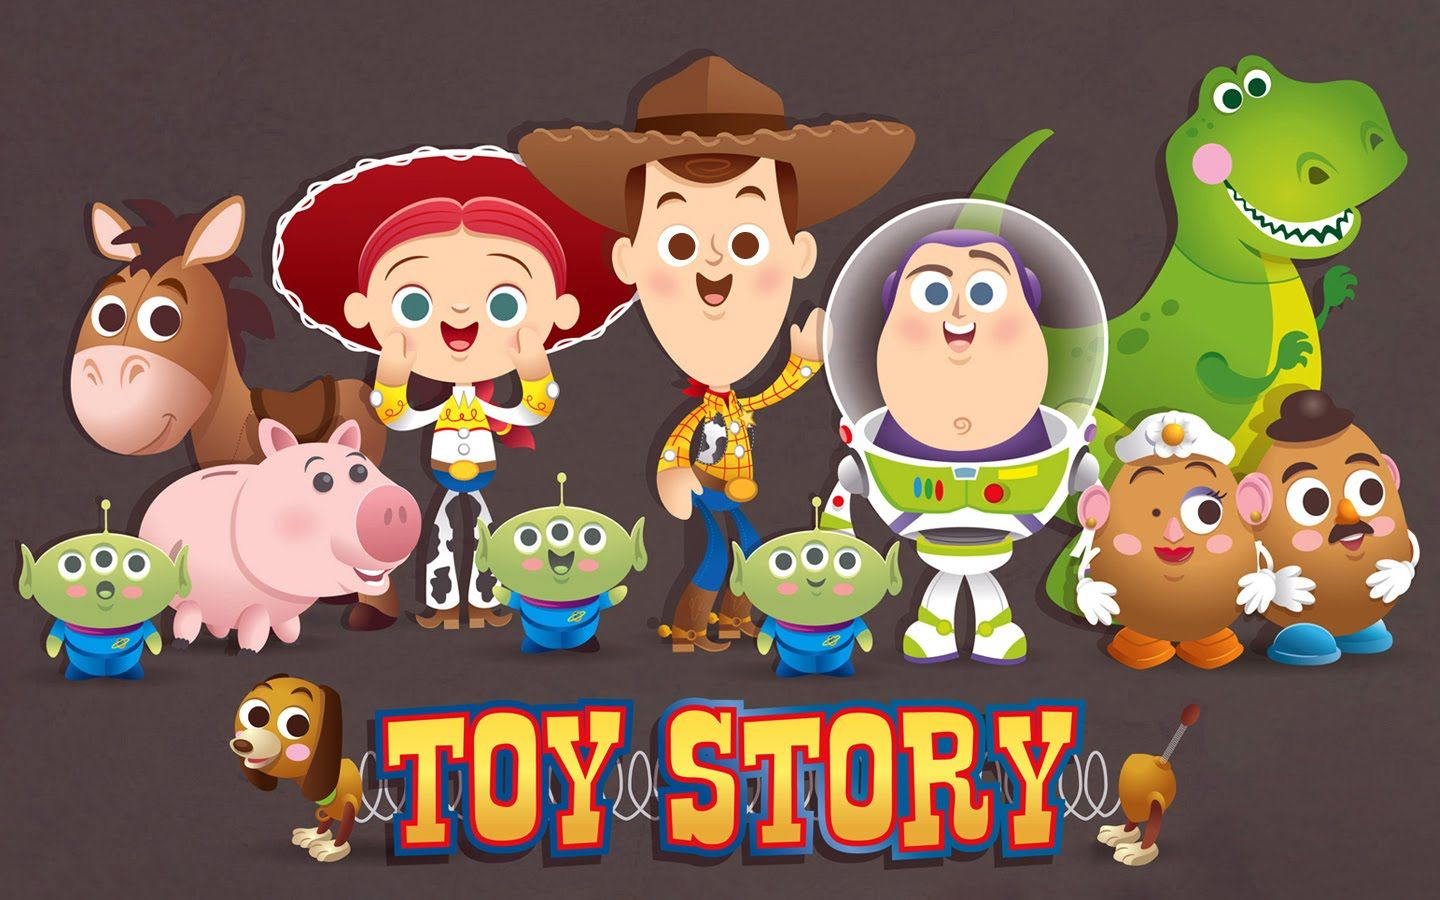 Spongebob Cute Wallpaper Desktop Toy Story Tattoo Toy Story Movie Toy Story Baby